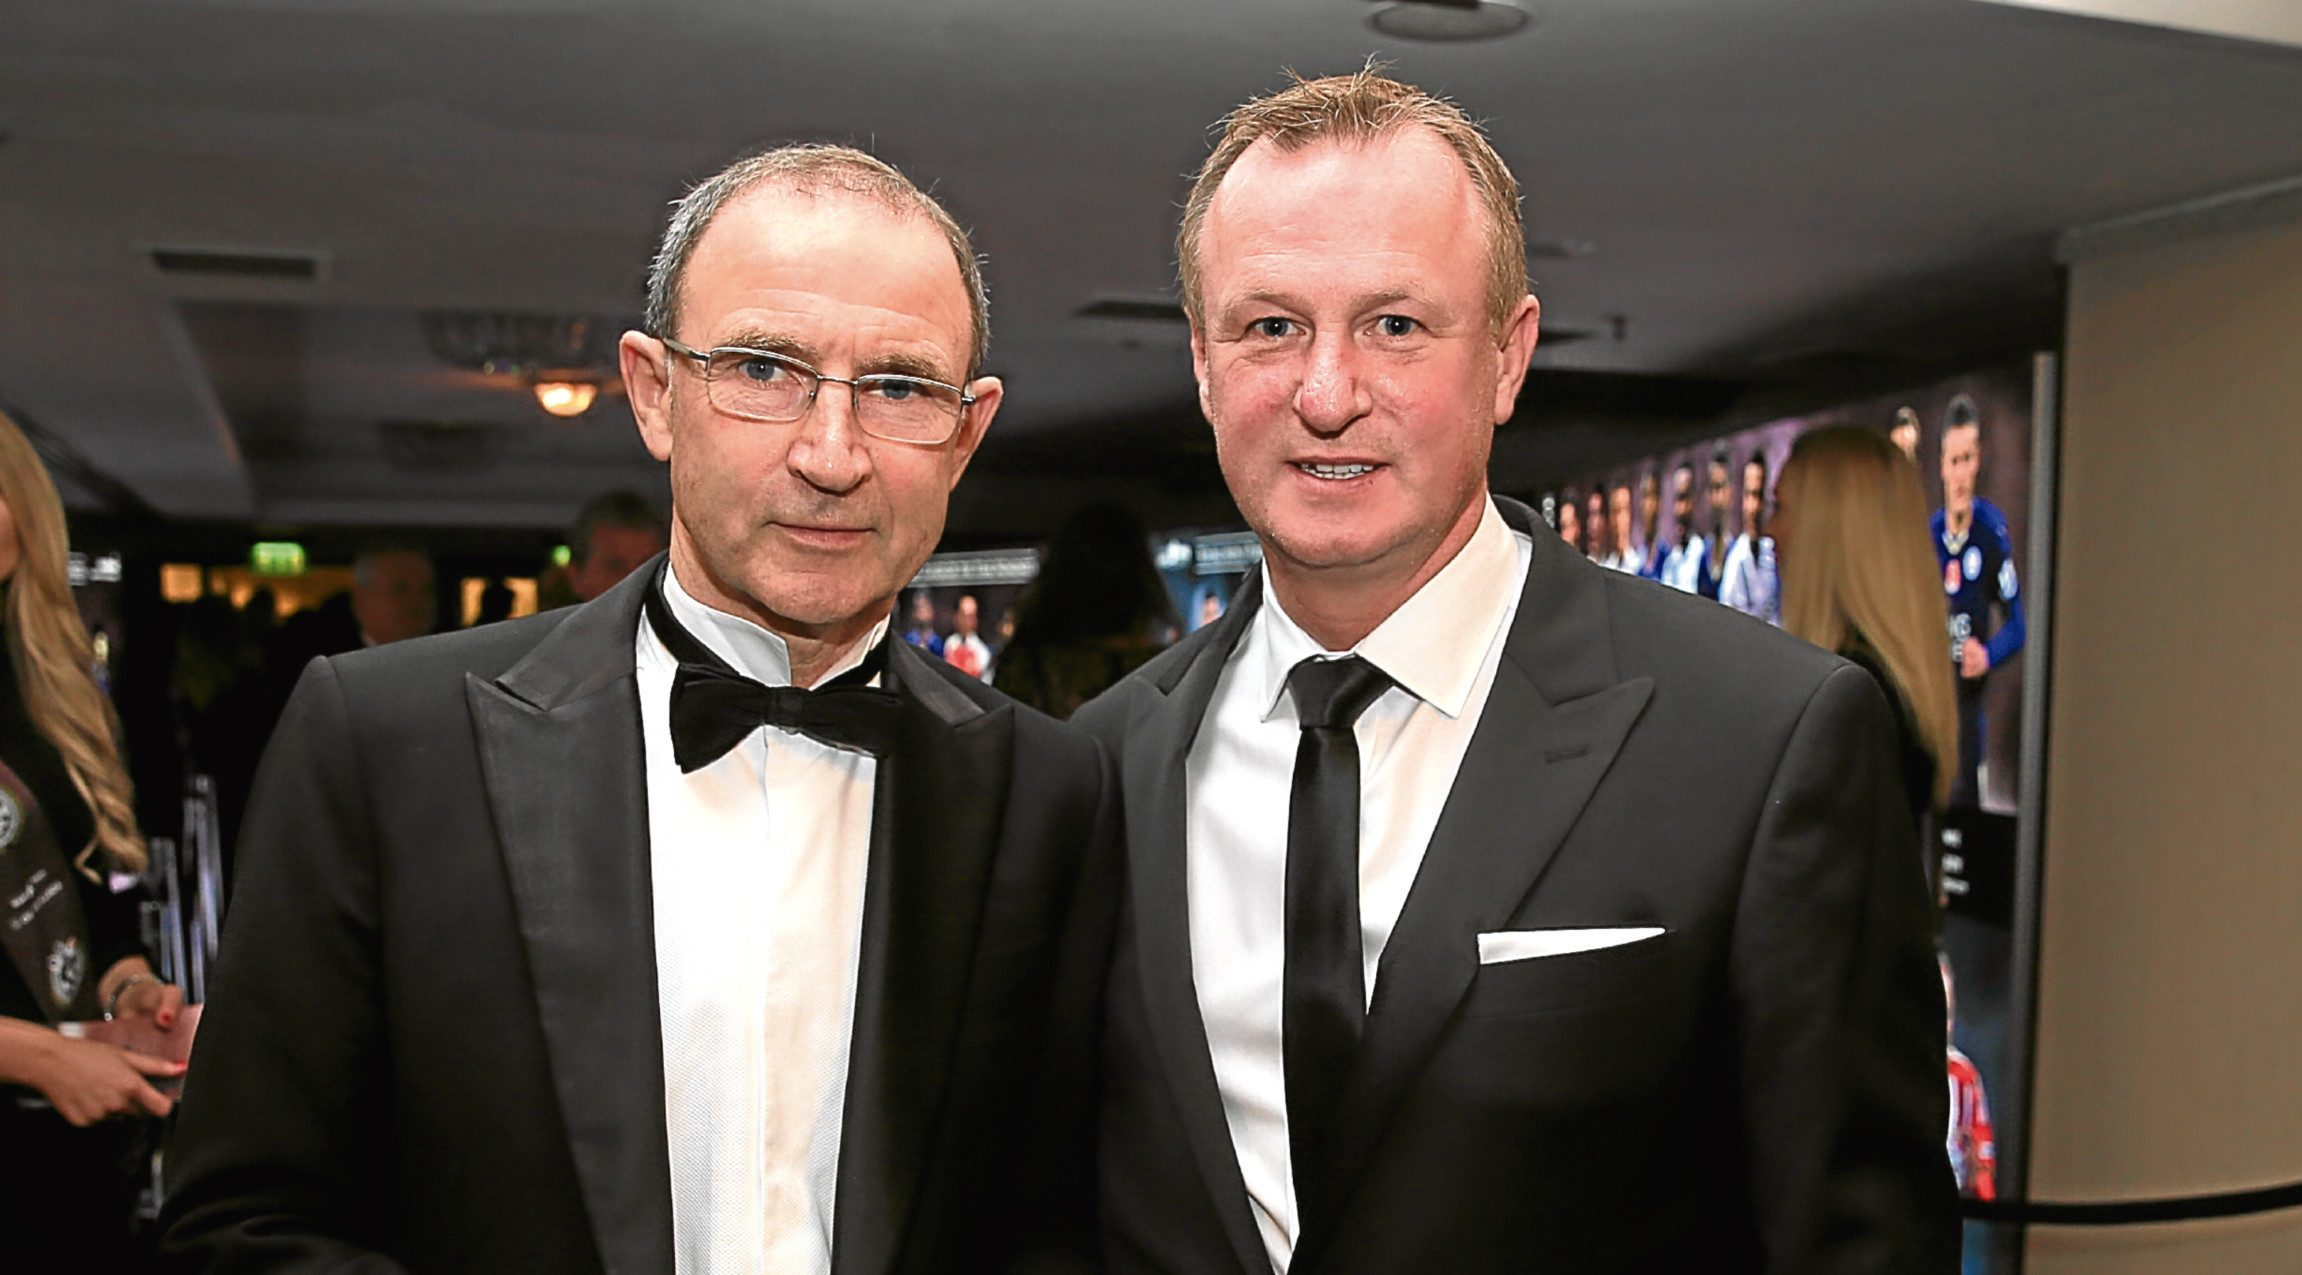 Republic of Ireland manager Martin O'Neill (left) and Northern Ireland manager Michael O'Neill (right) during the PFA Awards at the Grosvenor House Hotel, London.